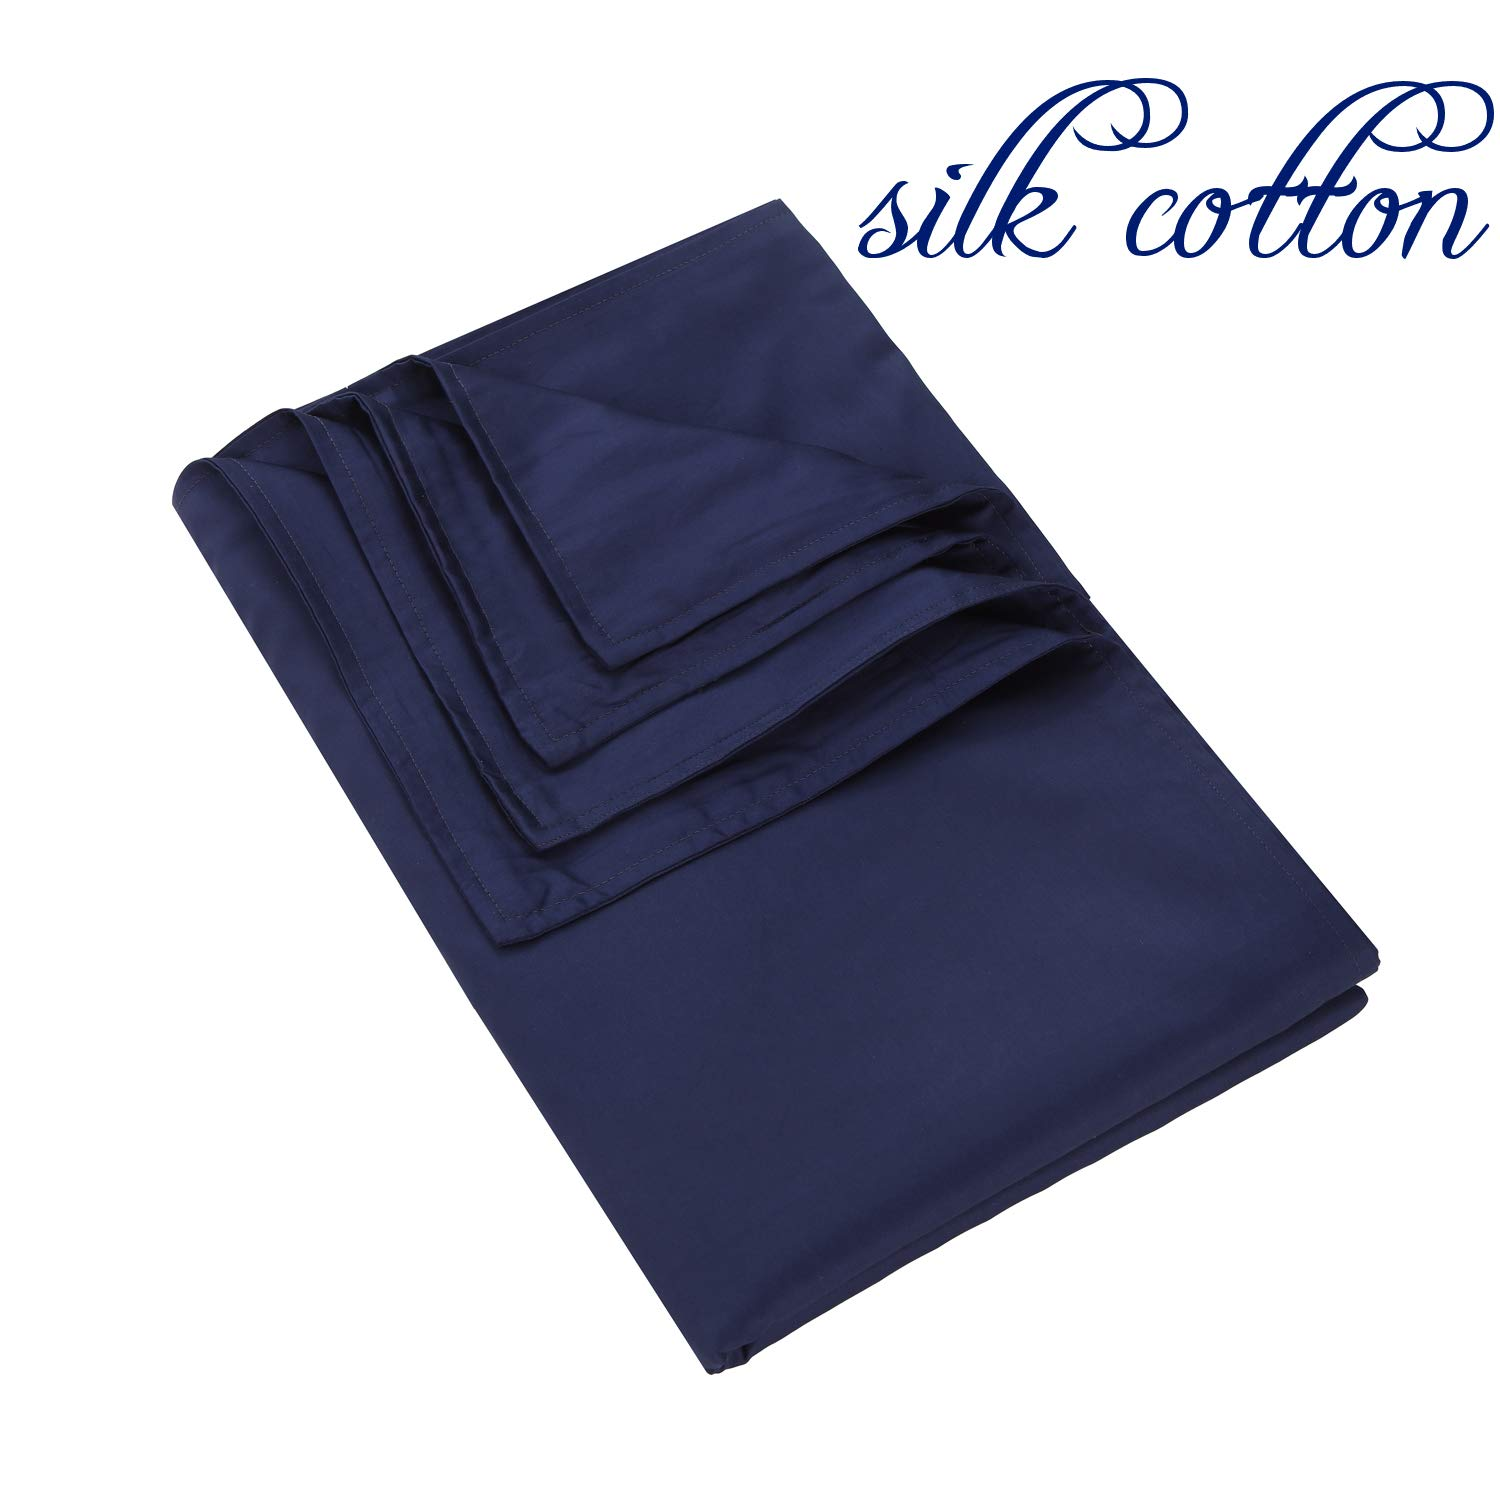 48x72 Duvet cover for weighted blanket Cover All Brand, Silk Cotton Weighted Blanket Cover with 6 Ties, Navy, Manlinar.